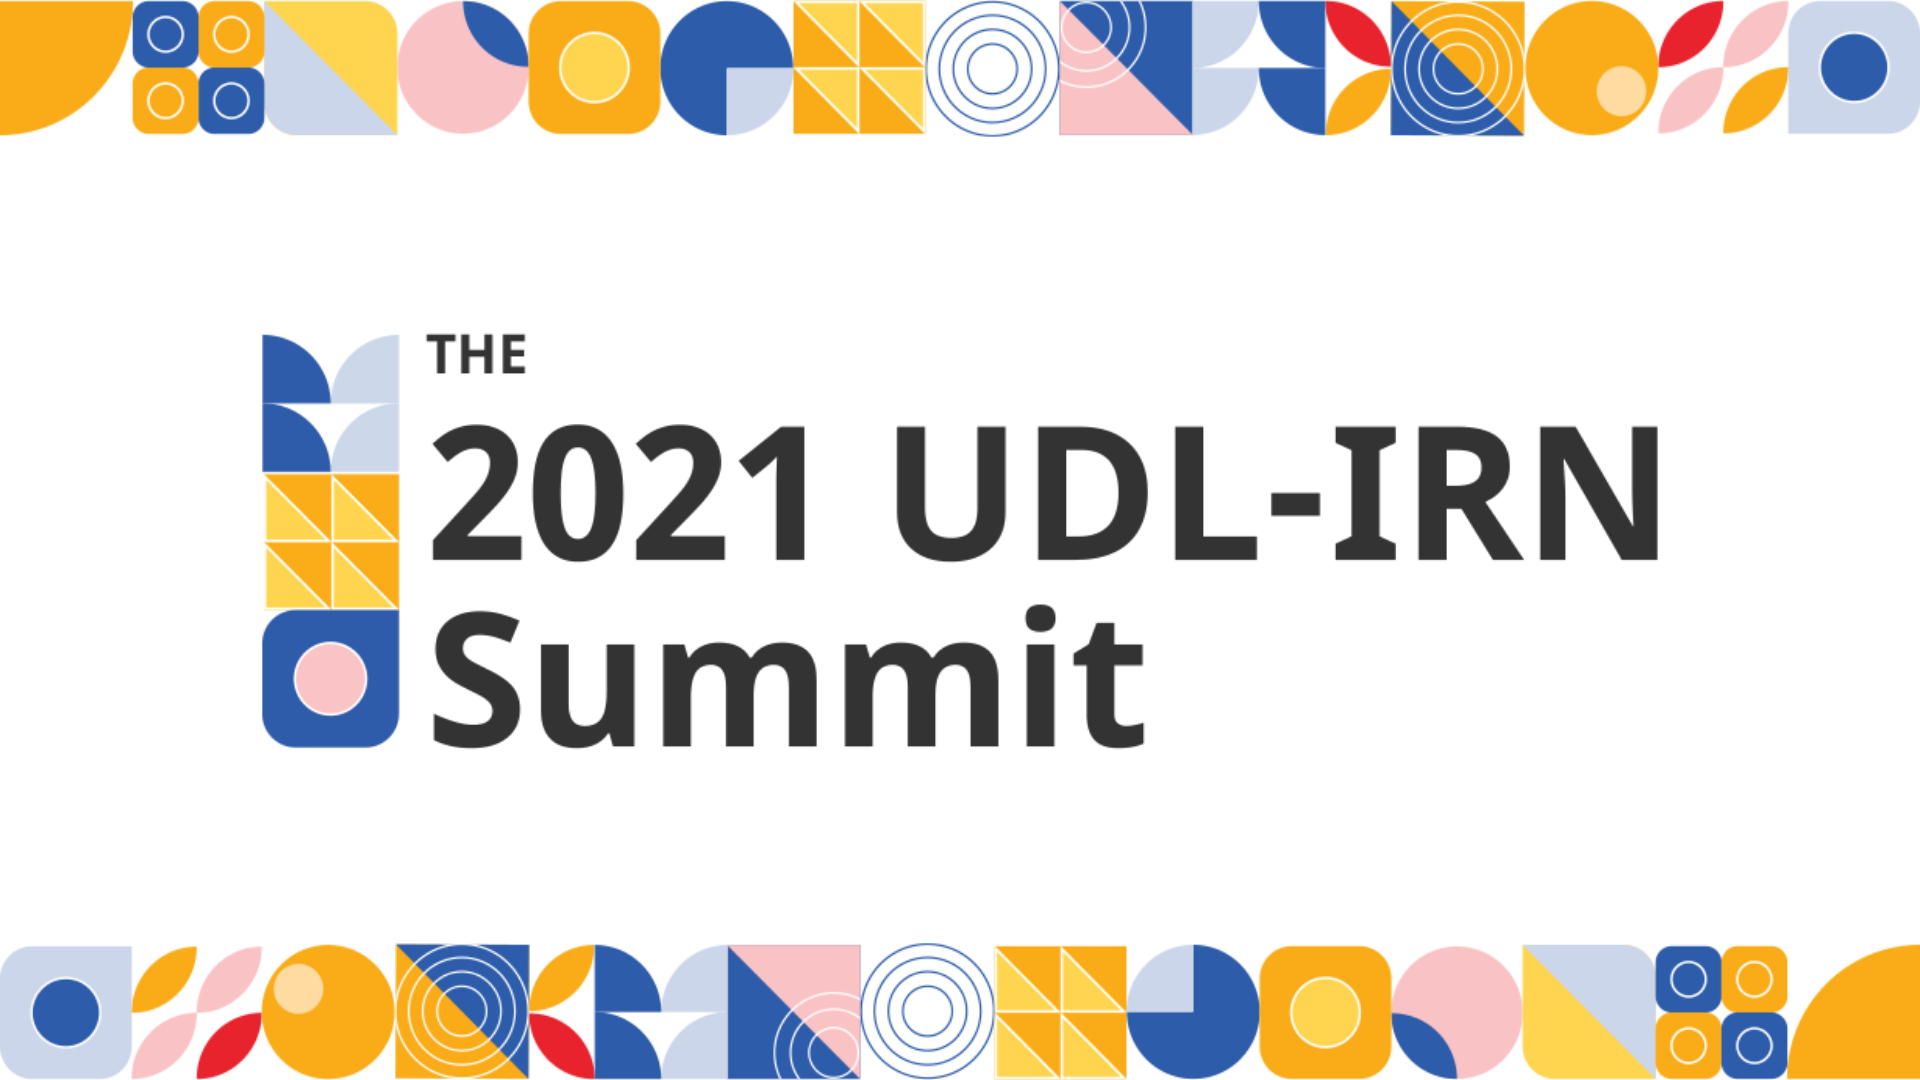 Tile says: The 2021 UDL-IRN Summit On Demand